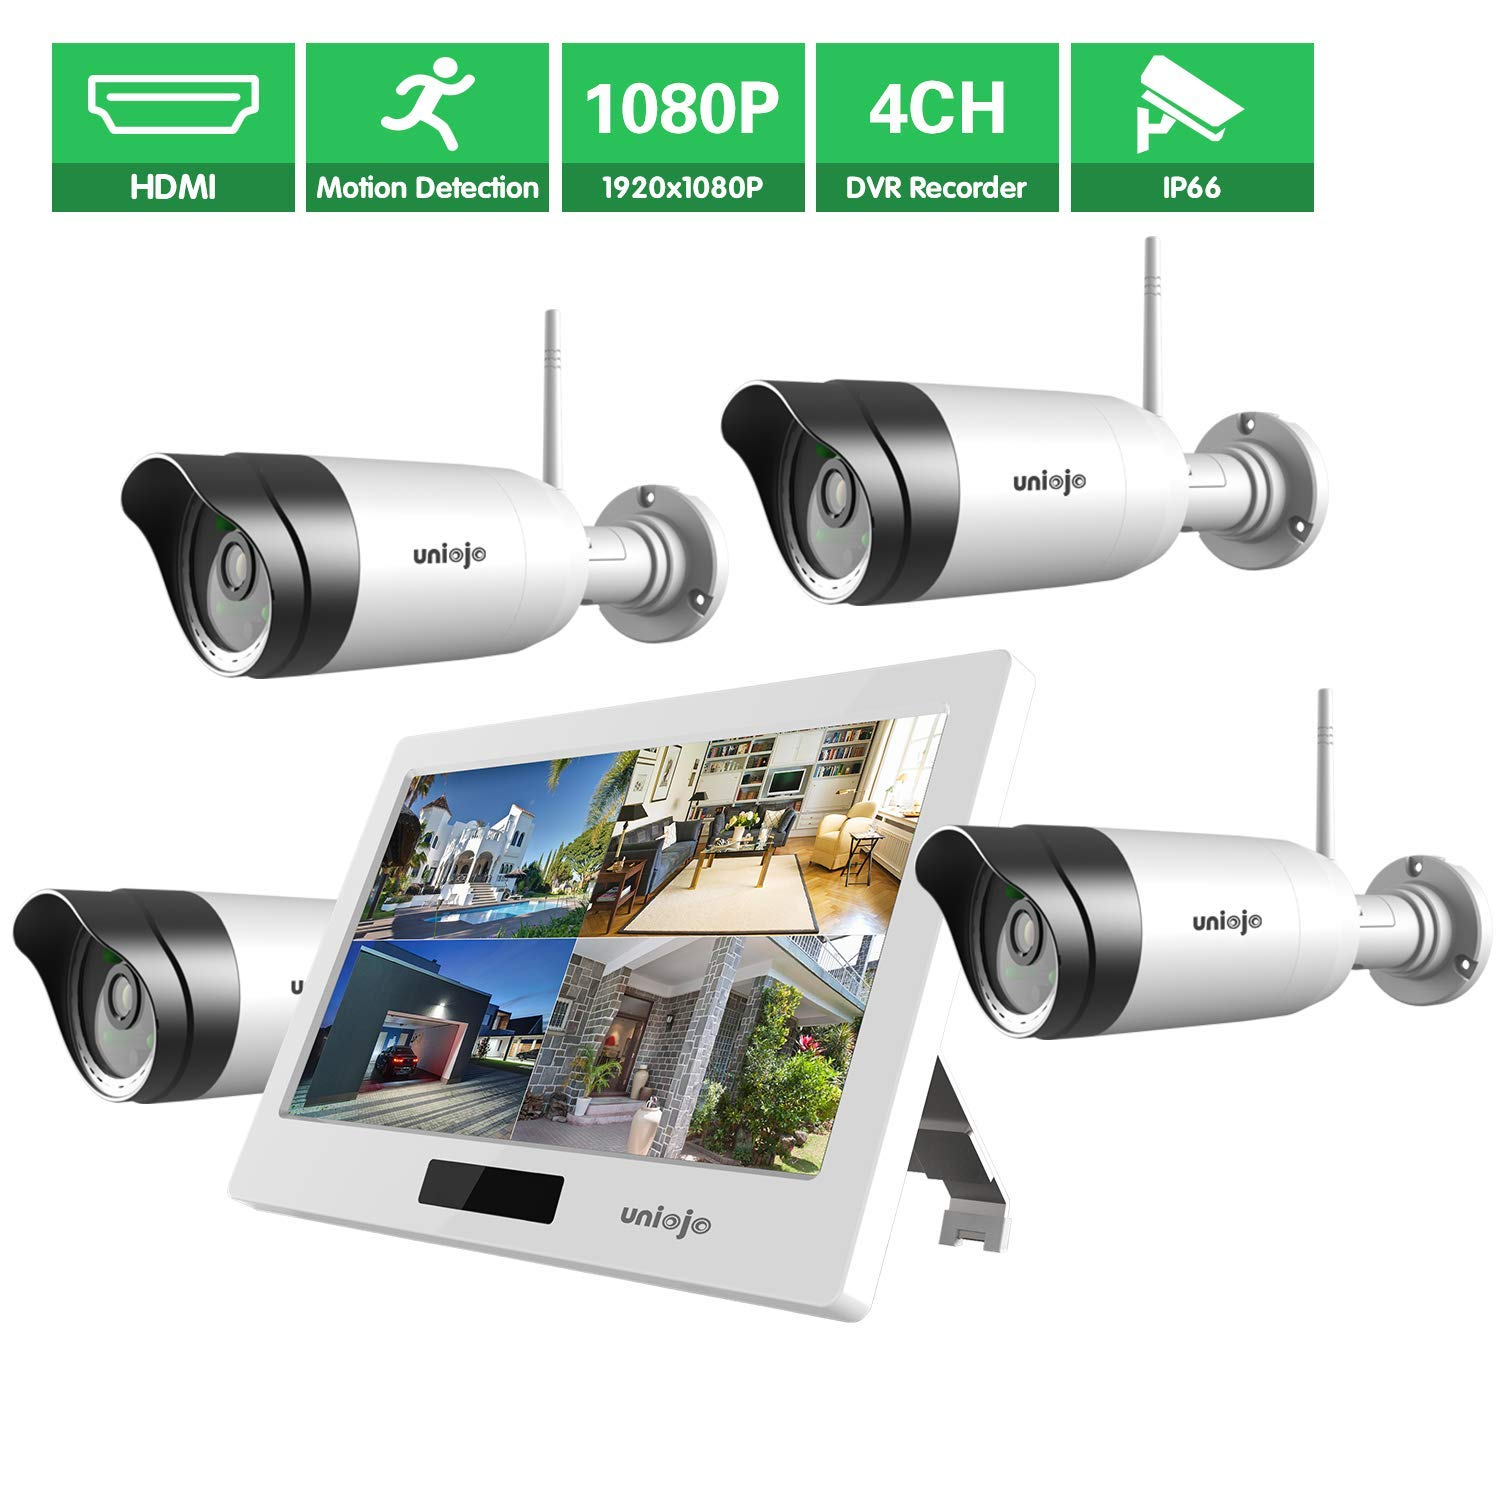 Wireless WiFi Security Camera System (4Pcs), UNIOJO 1080P NVR with 10.1 inches LCD Touch Screen Monitor, 4 HD 2.0 Megapixel Night Vision IP66 Waterproof IP Security Surveillance Camera by UNIOJO